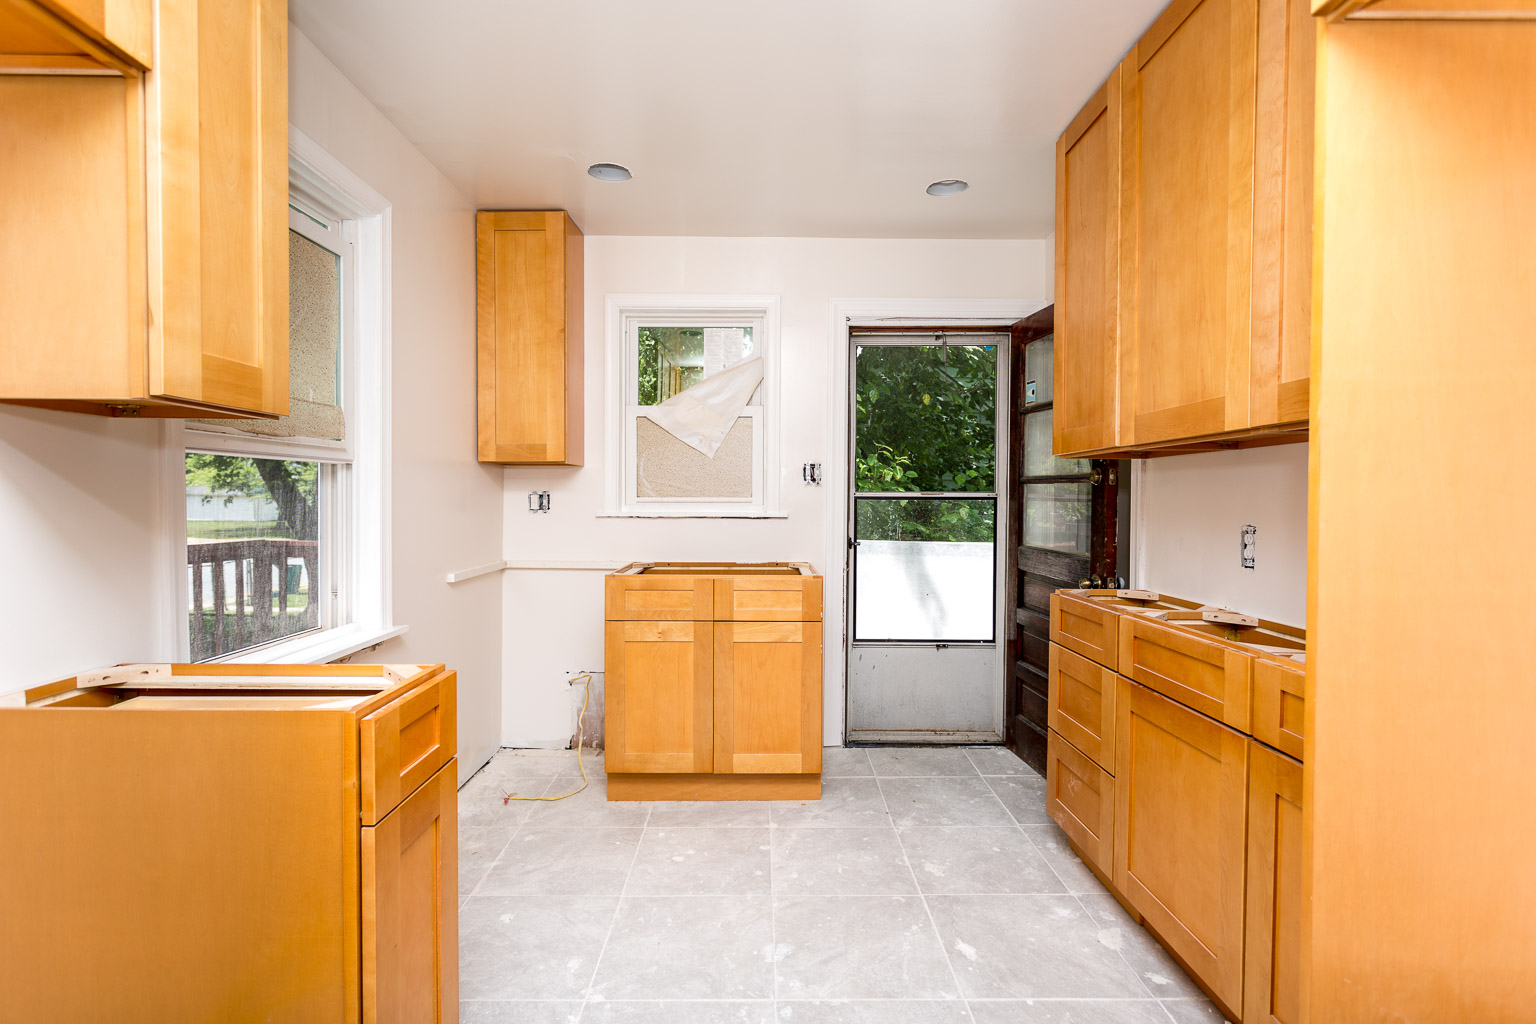 There's recessed lighting now and cabinets that are actually installed properly. The gas line is moved from the right side of the room near the door to the bottom left corner of this photo to create a better flow in the kitchen. All that's left to install is the countertops and the appliances.